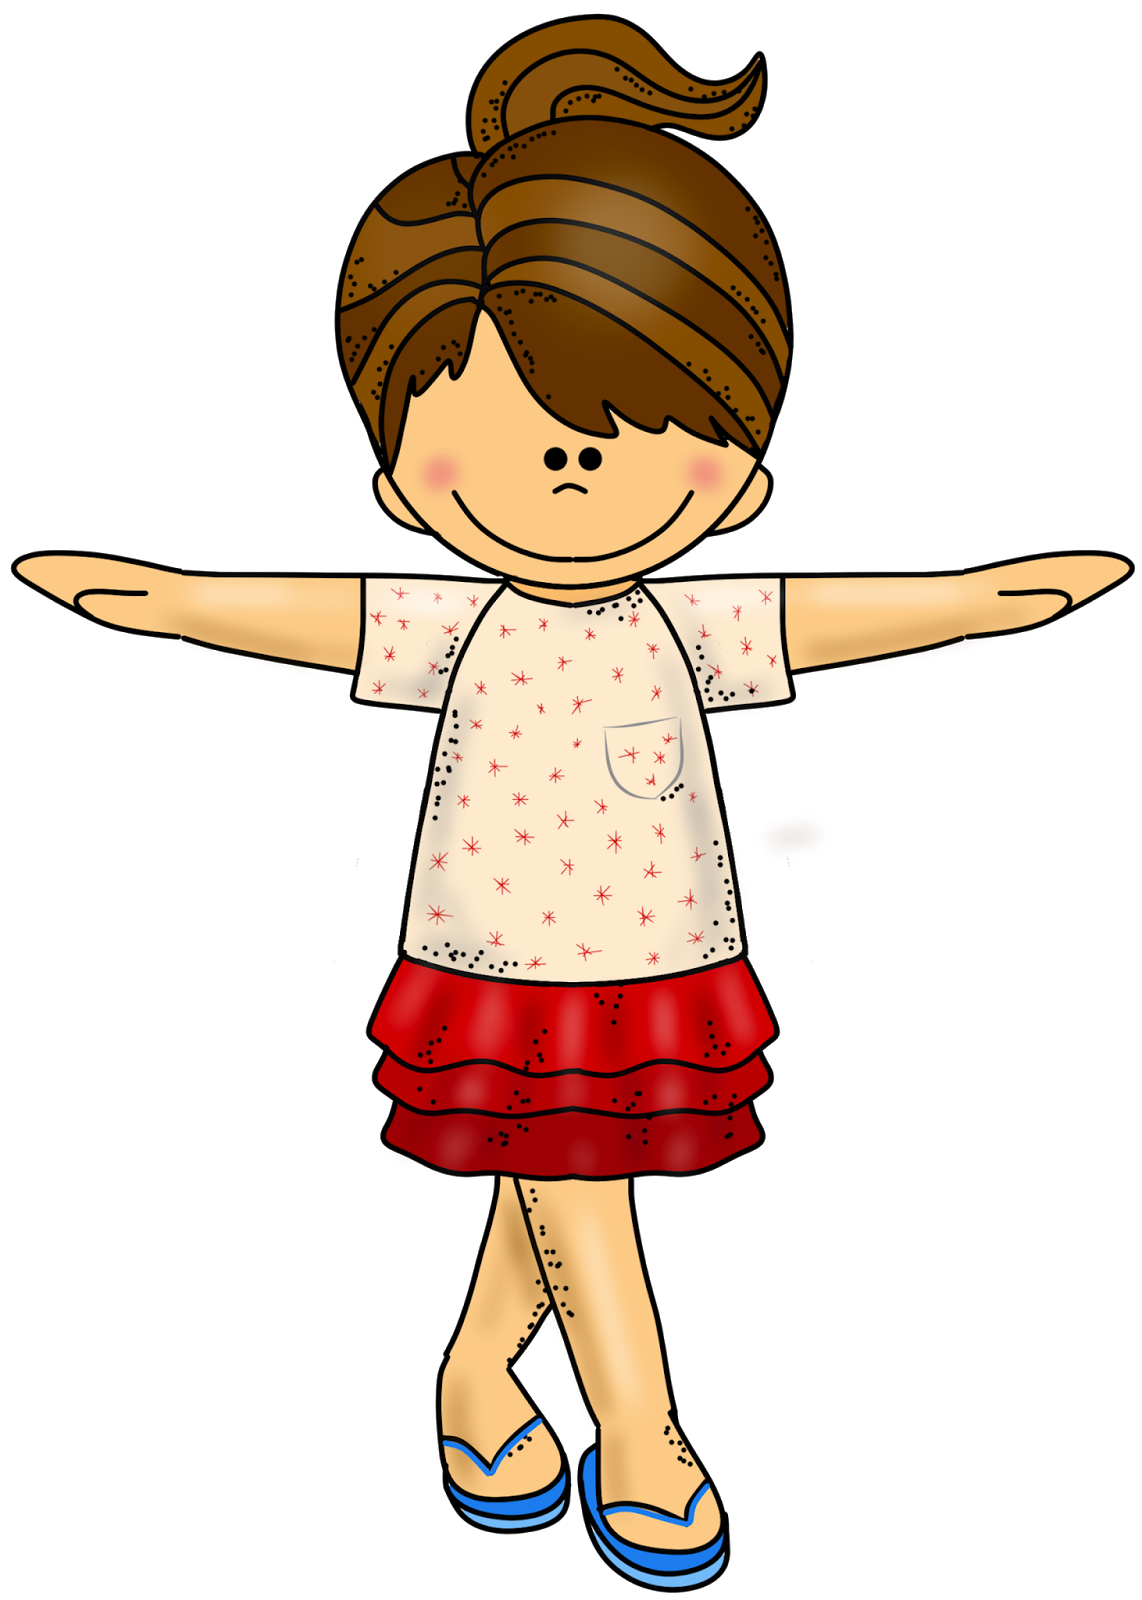 Clip Art Sister Clipart sister to clipart kid 2014 clipartpanda com about terms